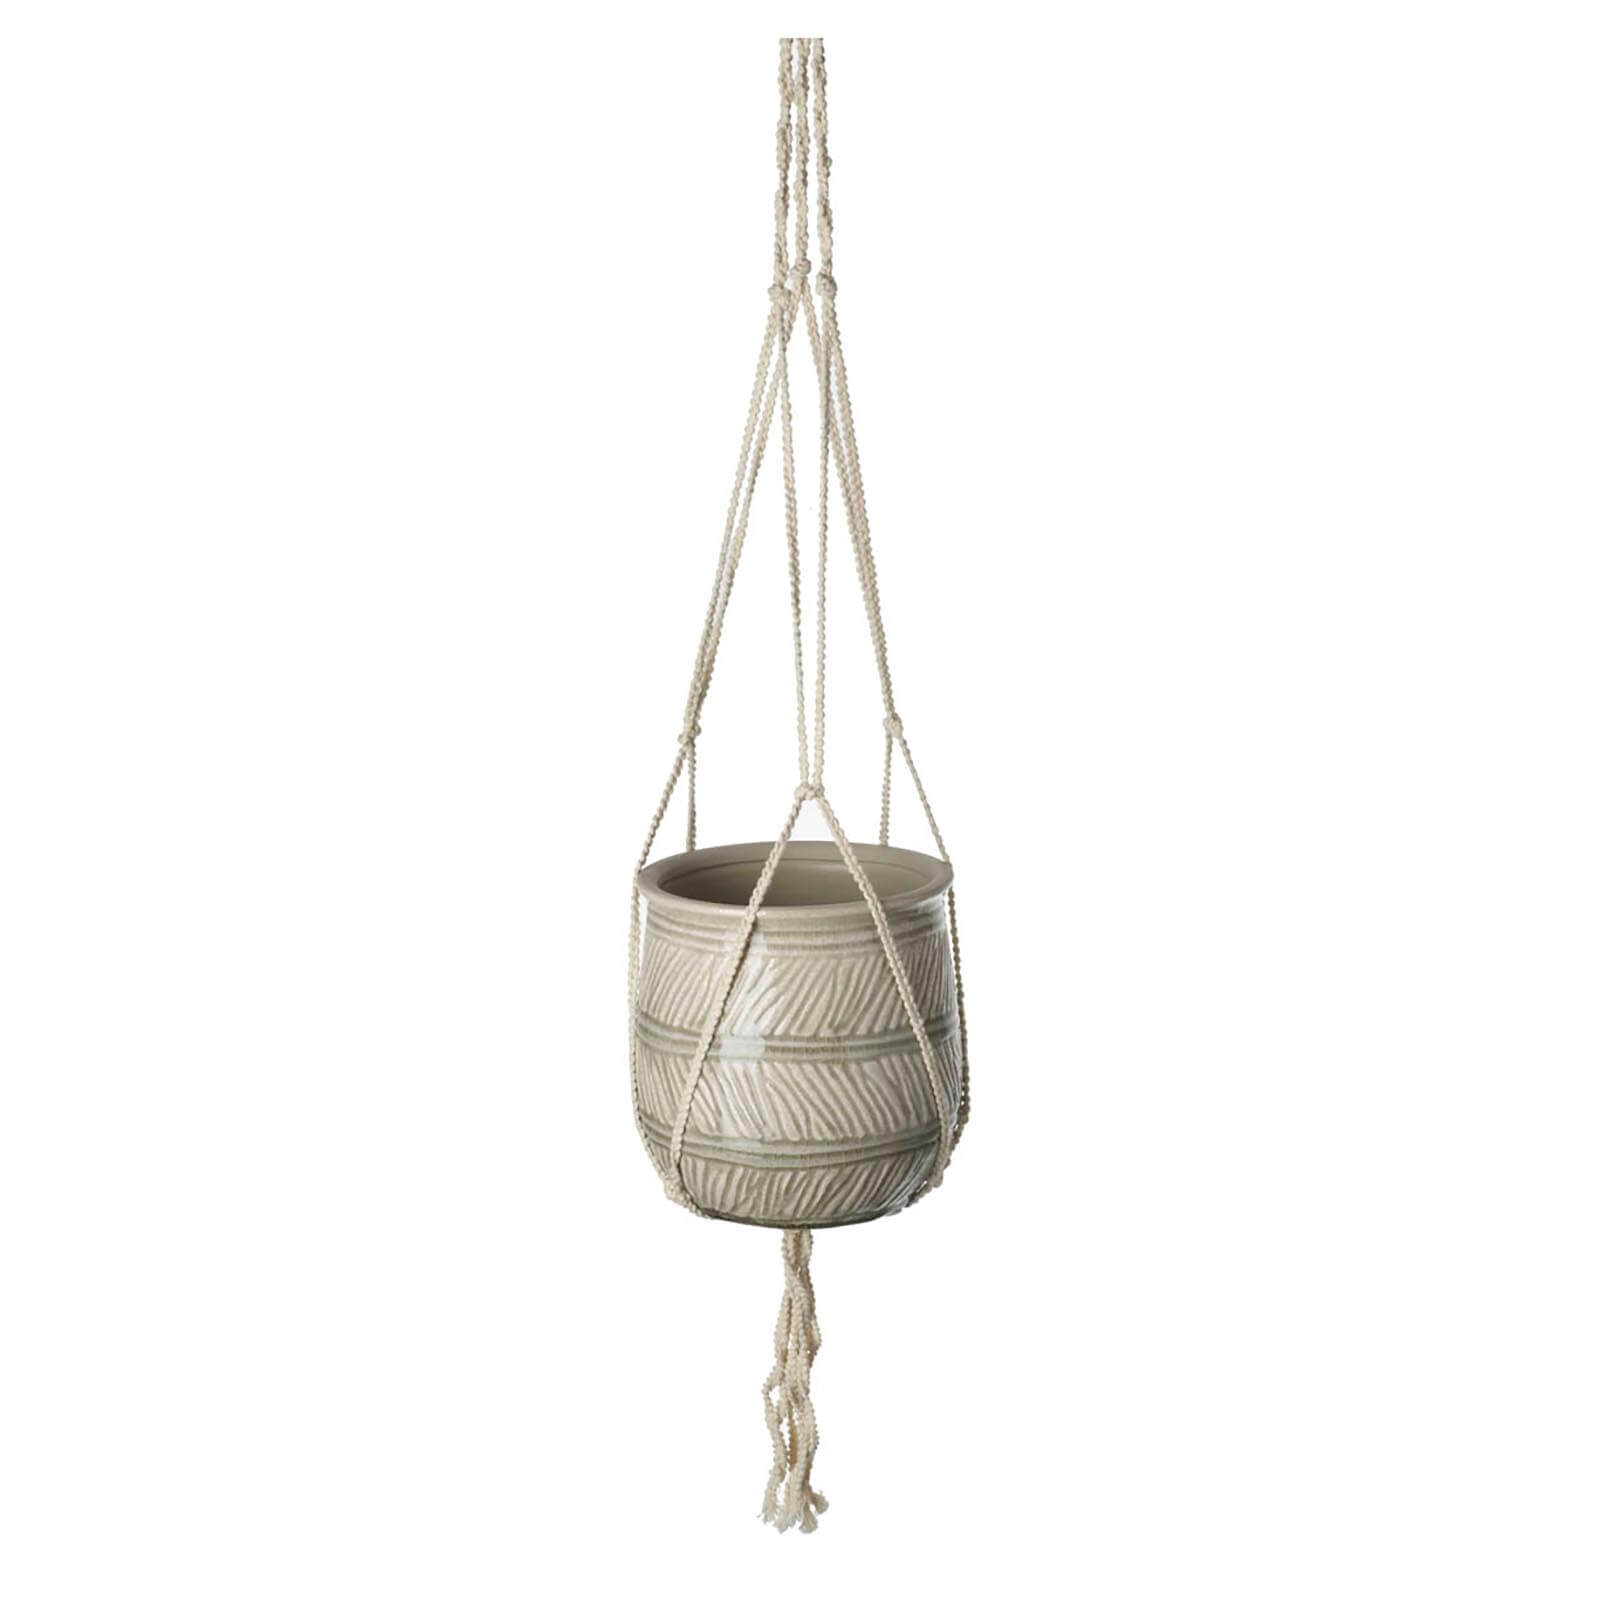 Parlane Terra Ceramic Pot with Hanger - Grey (16 x 15.5cm)